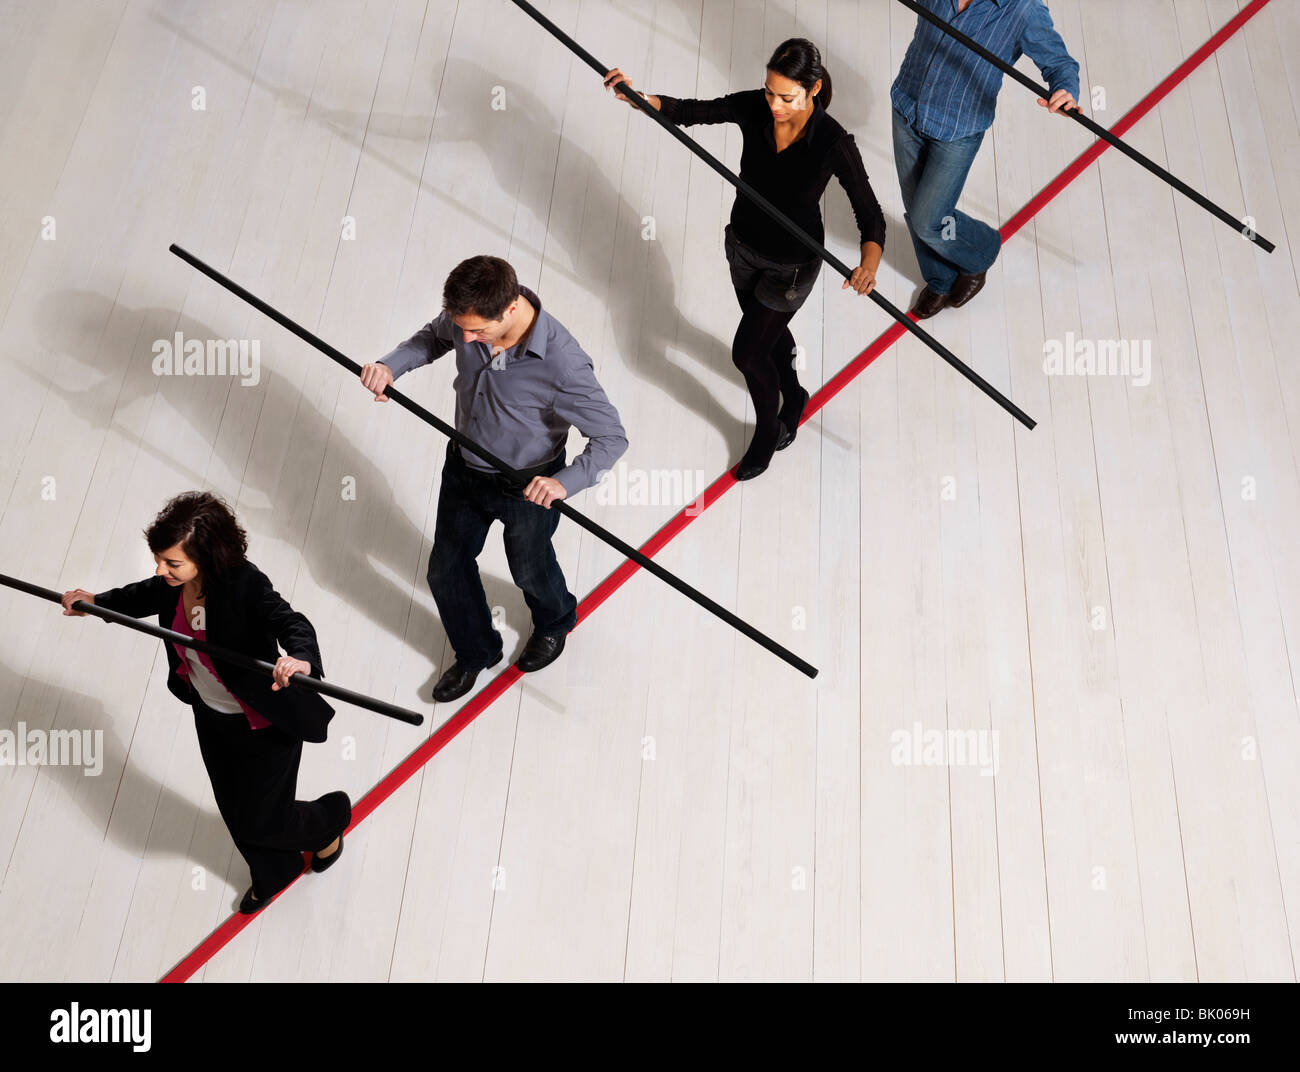 People balancing on thin red line - Stock Image